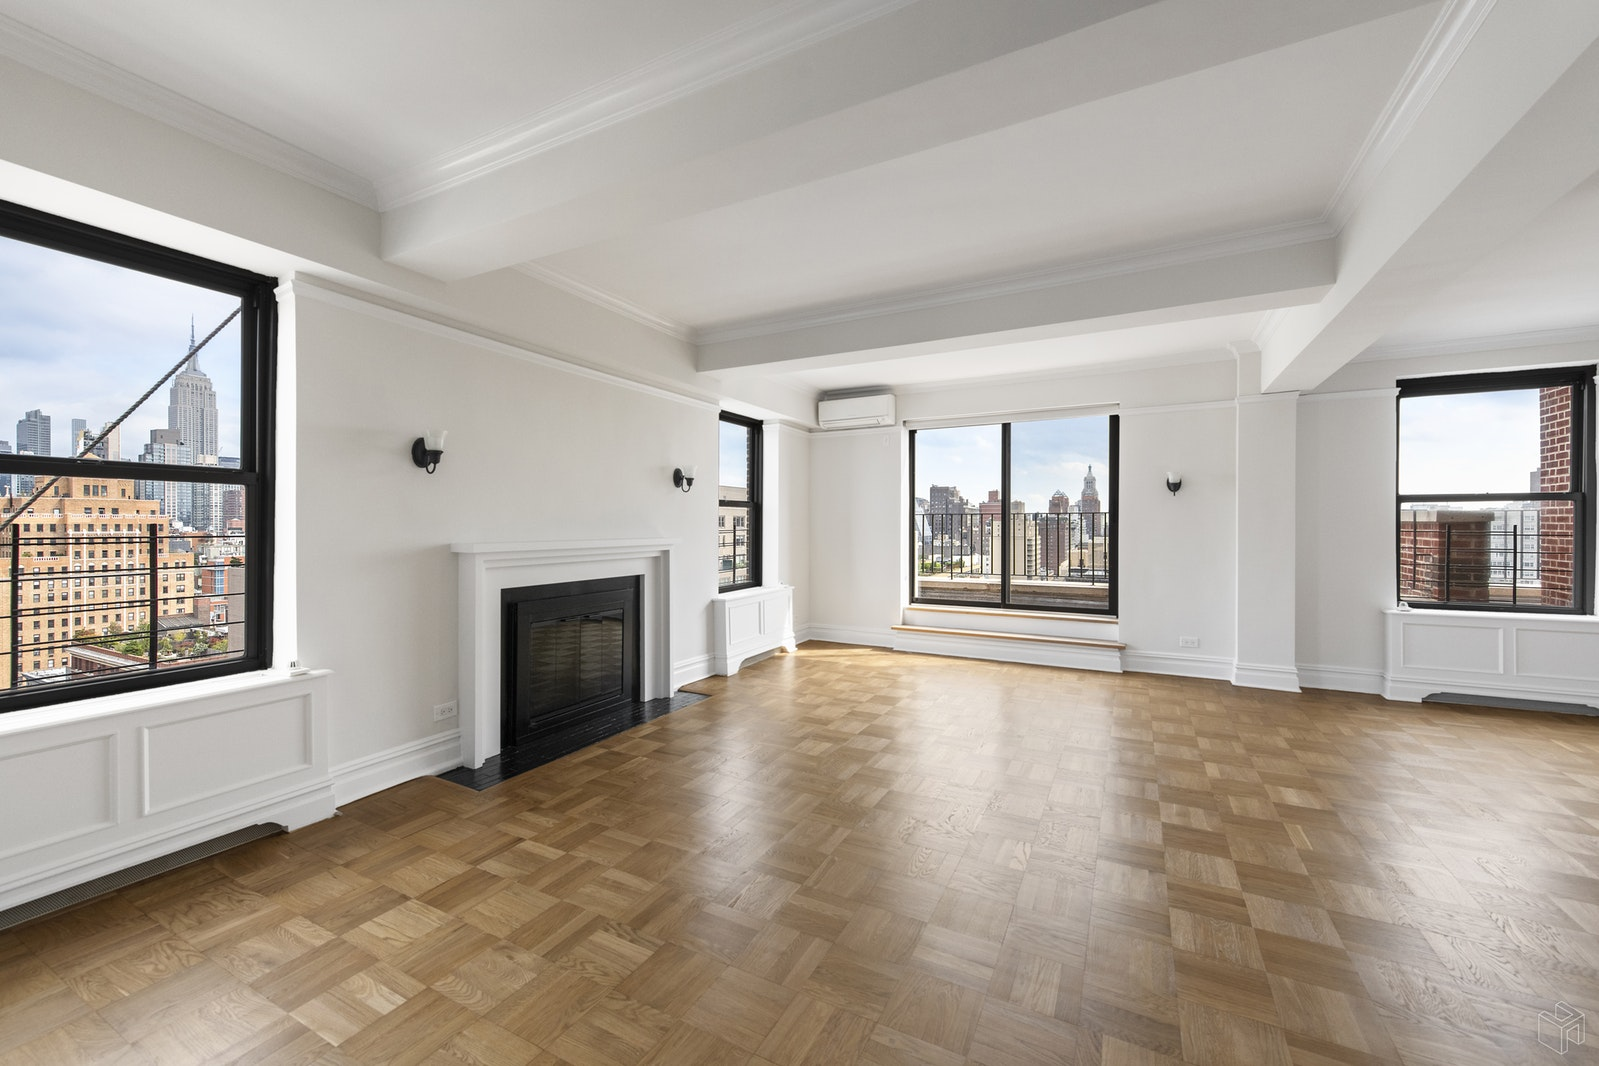 56 Seventh Avenue 20b, West Village, NYC, 10011, Price Not Disclosed, Rented Property, Halstead Real Estate, Photo 2